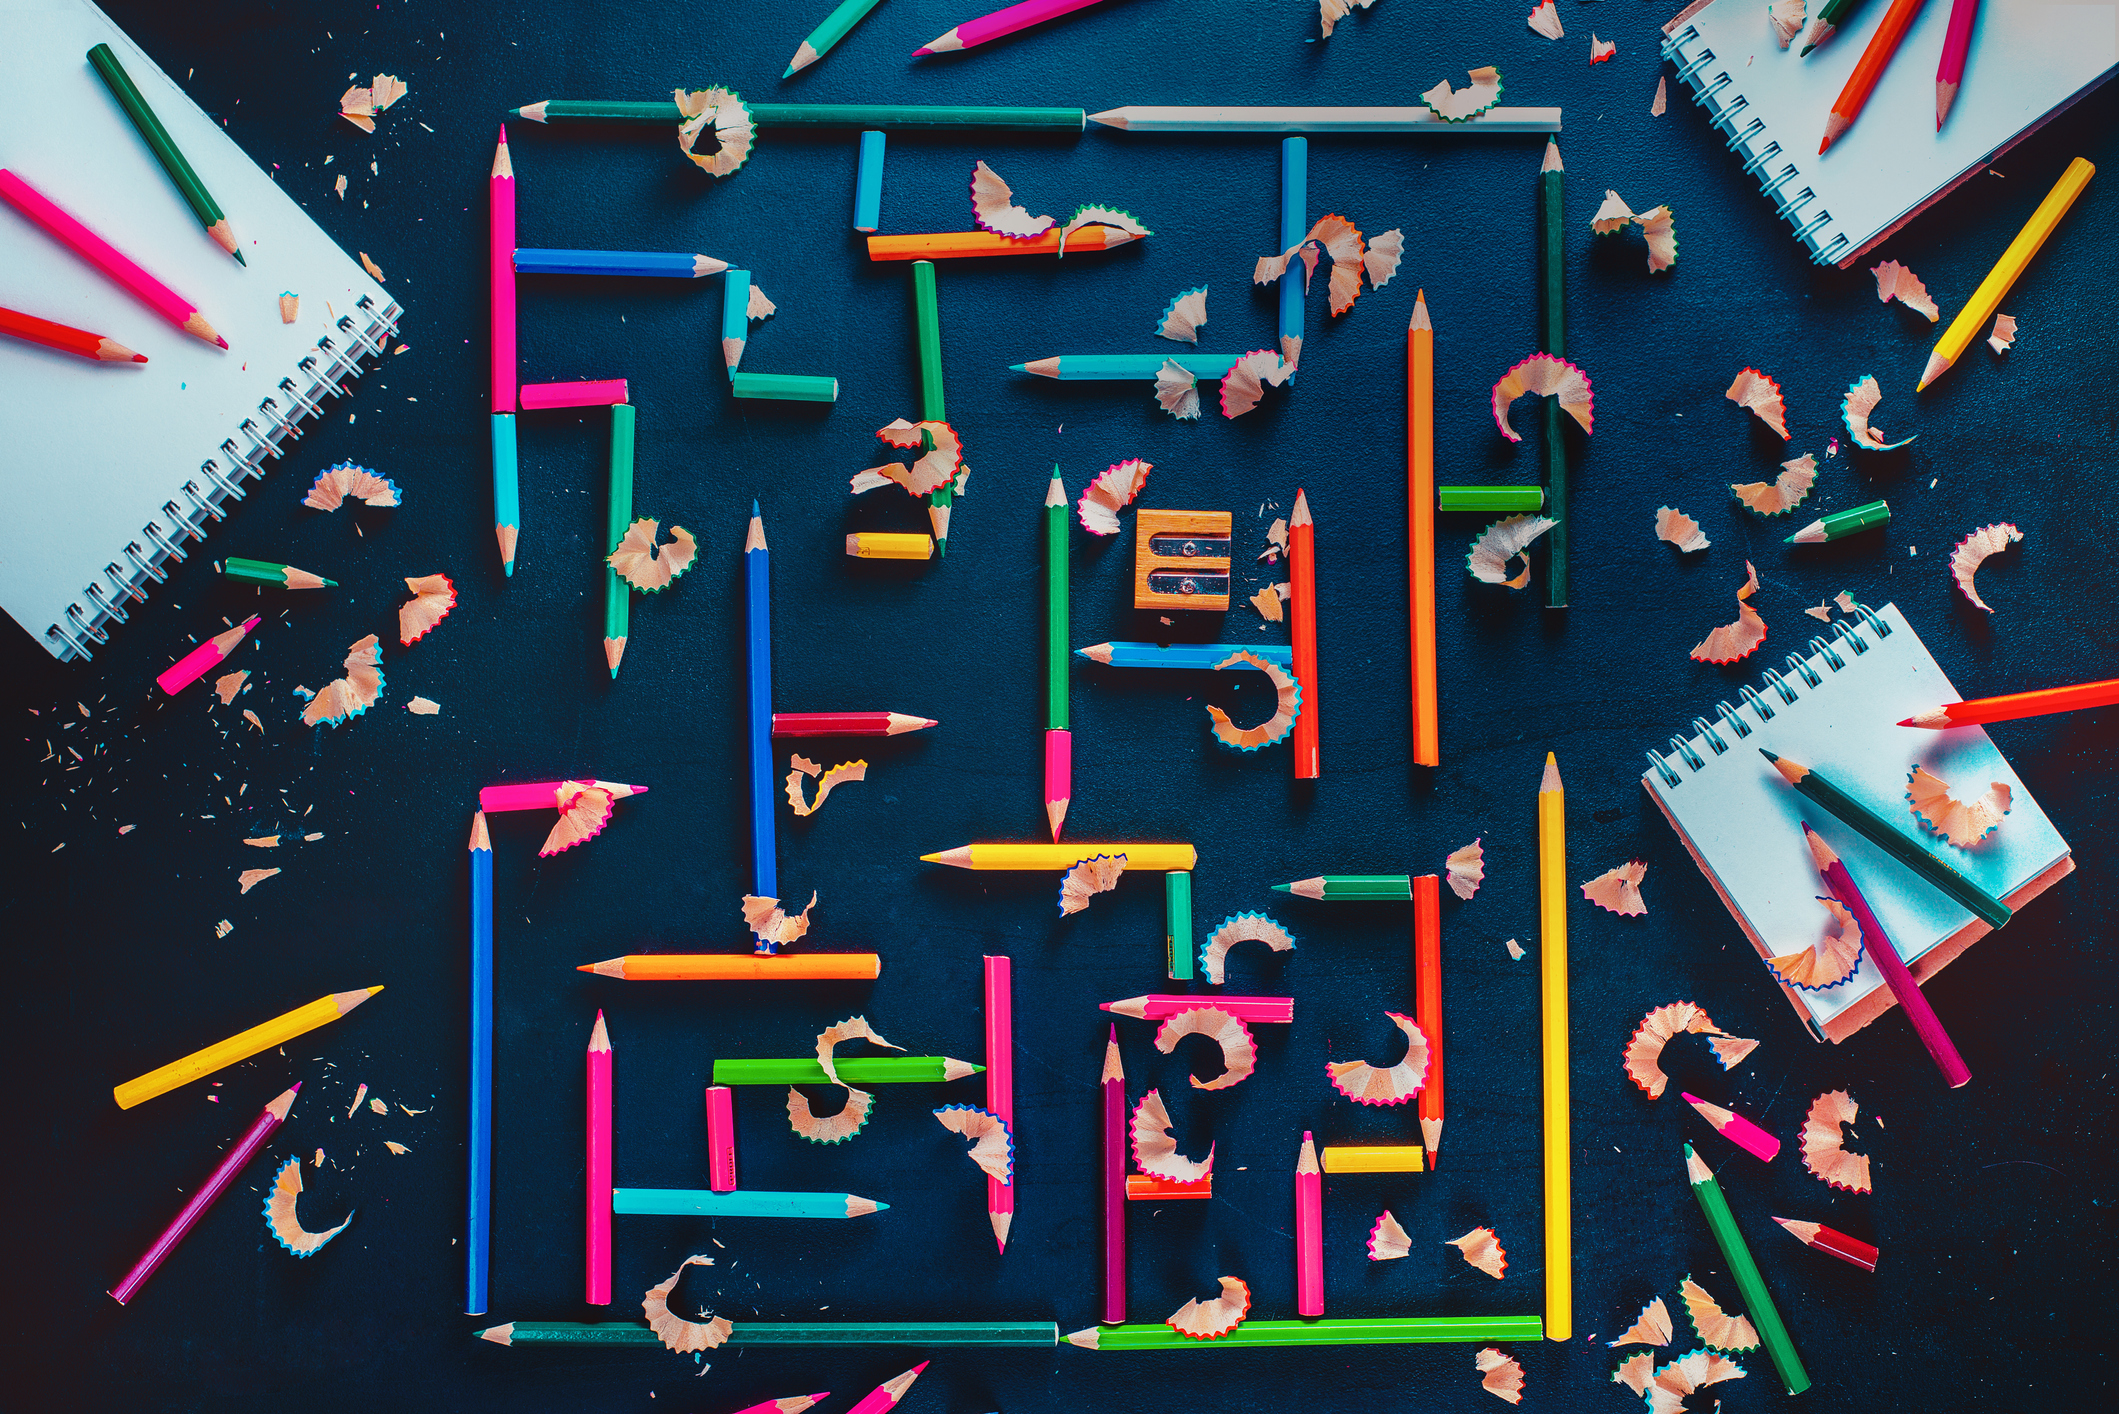 Conceptual still life with notepads, paper, and a labyrinth made of coloured pencils on a dark wooden background